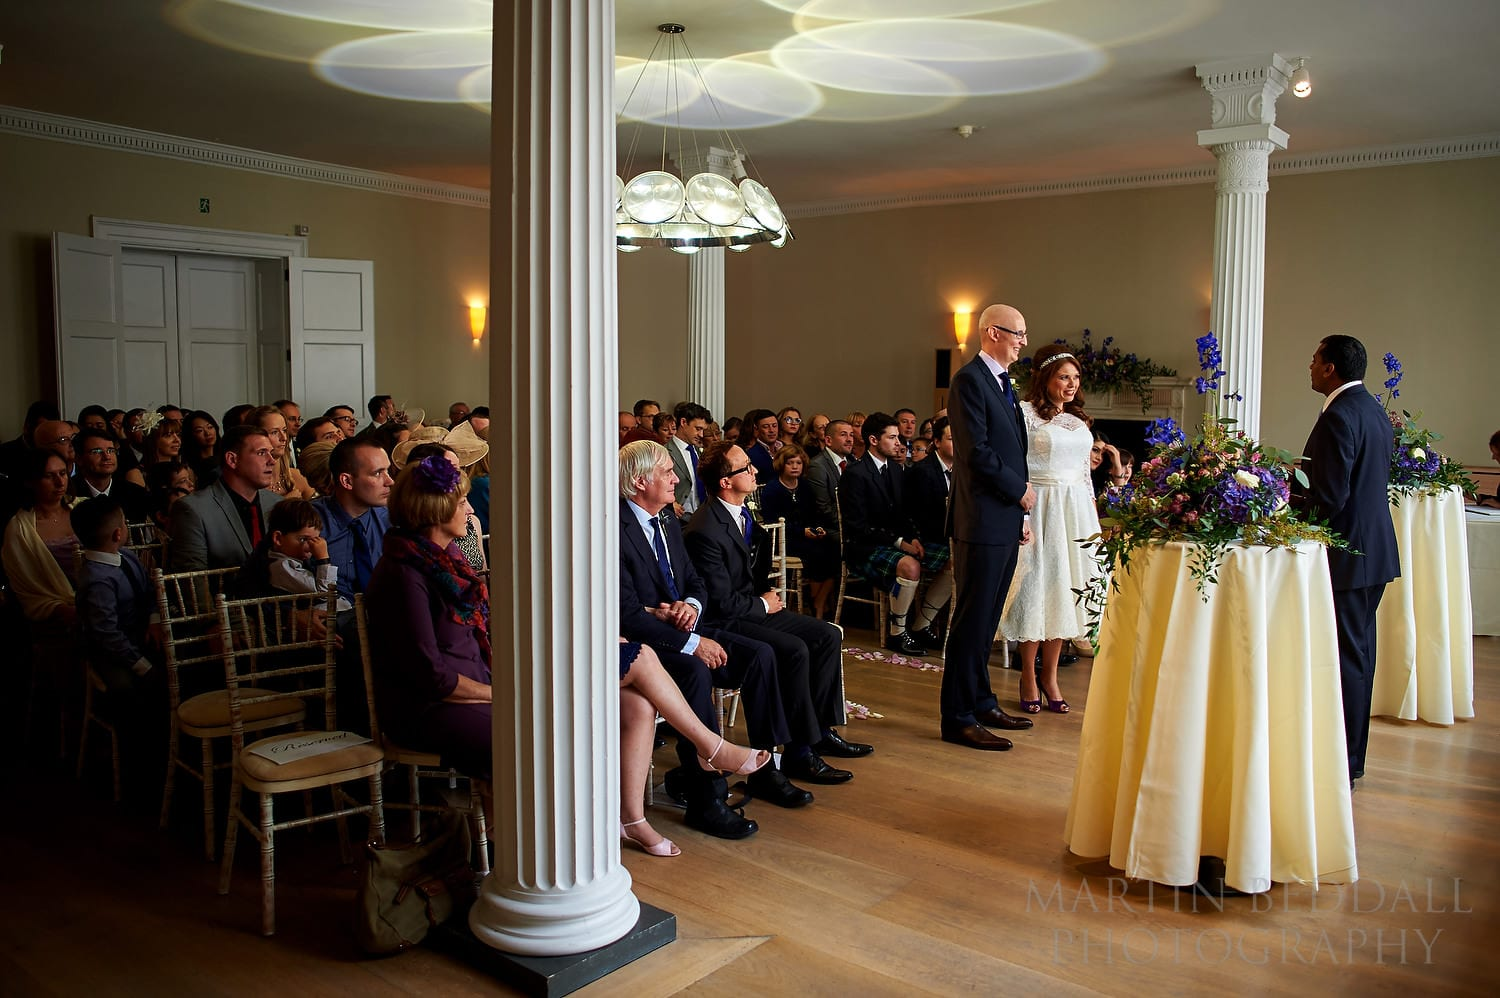 Wedding ceremony in the Benjamin Franklin room at the Royal Society of Arts in London